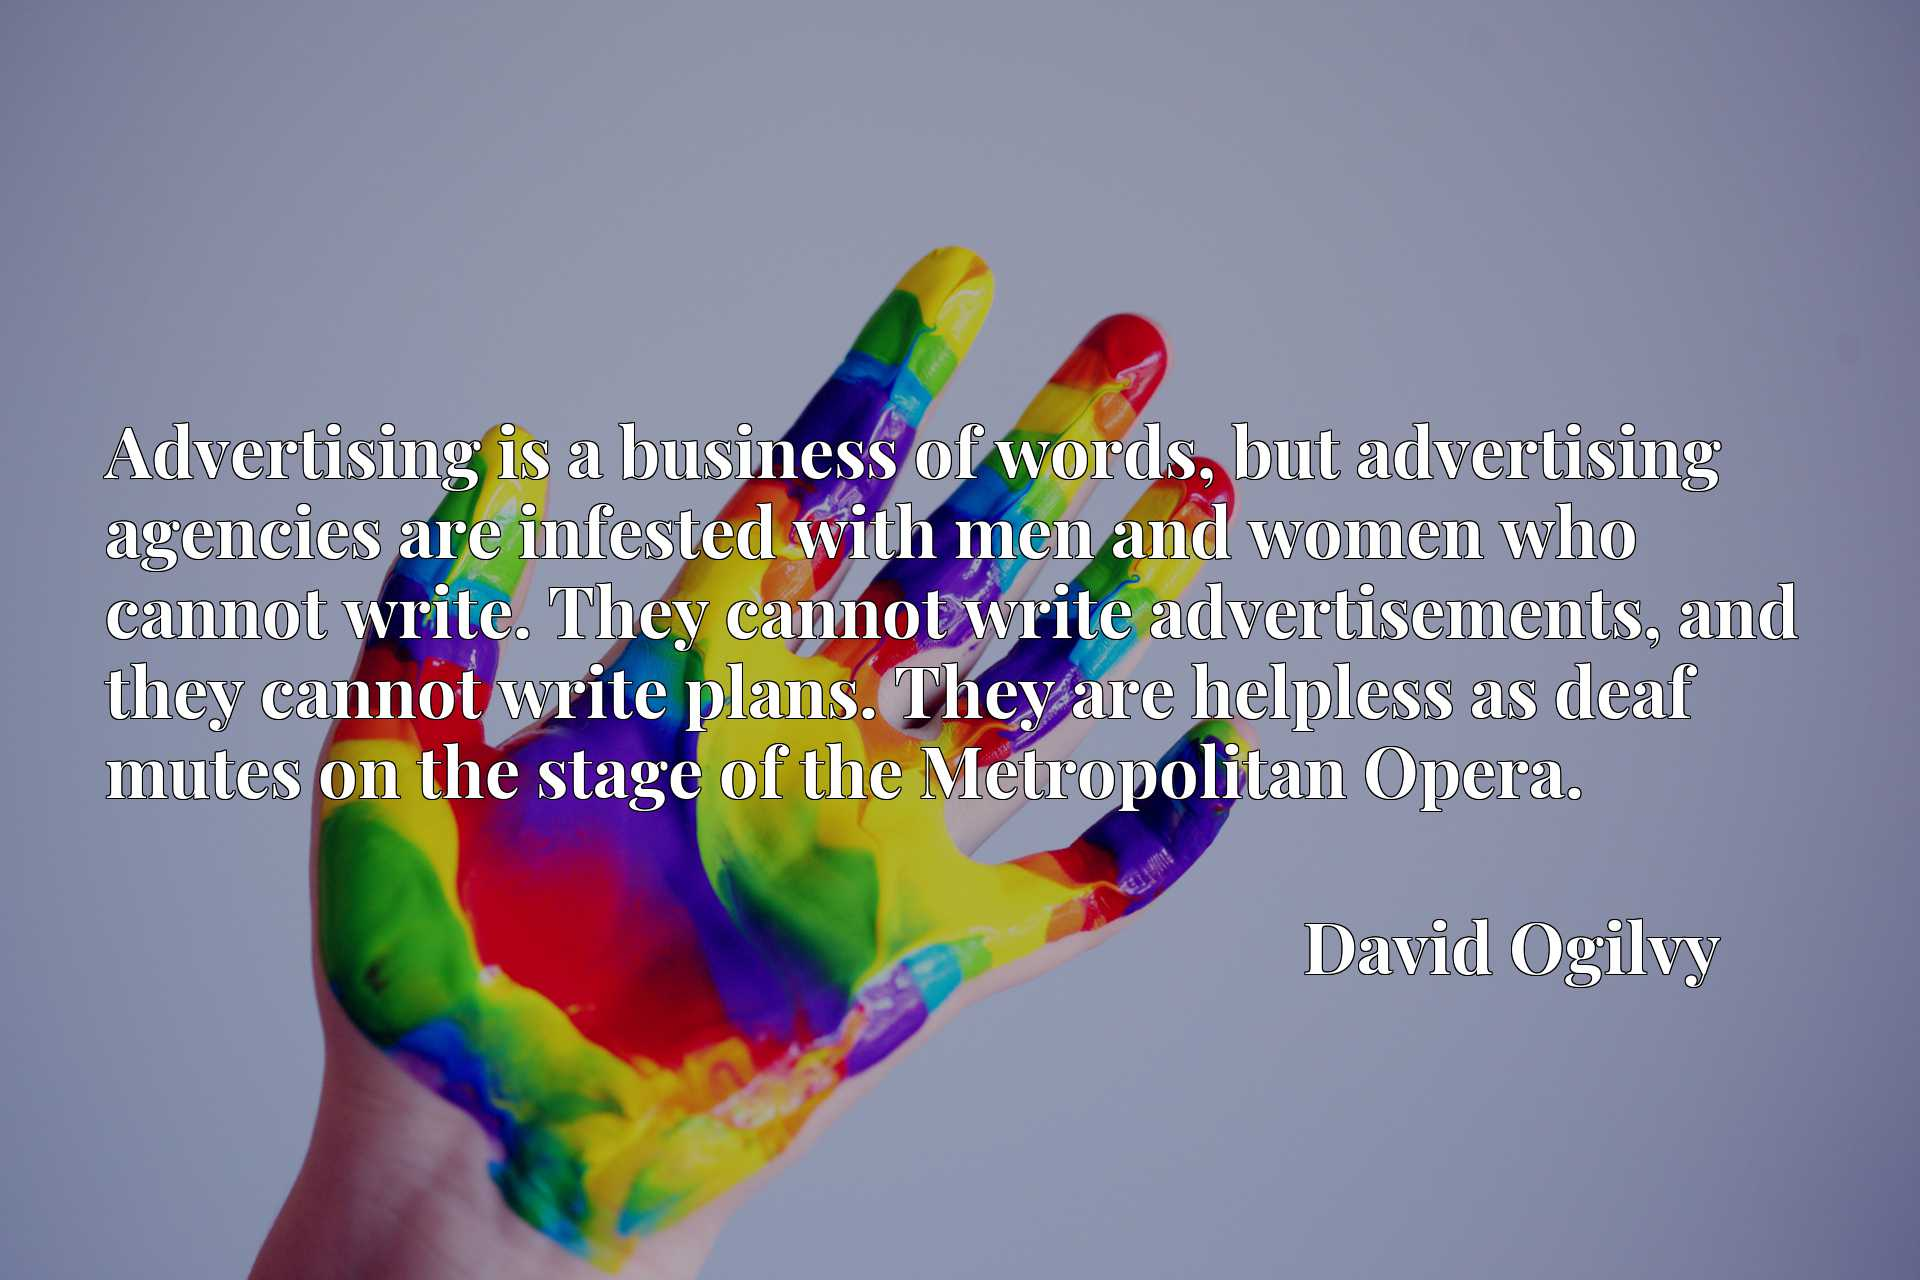 Advertising is a business of words, but advertising agencies are infested with men and women who cannot write. They cannot write advertisements, and they cannot write plans. They are helpless as deaf mutes on the stage of the Metropolitan Opera.